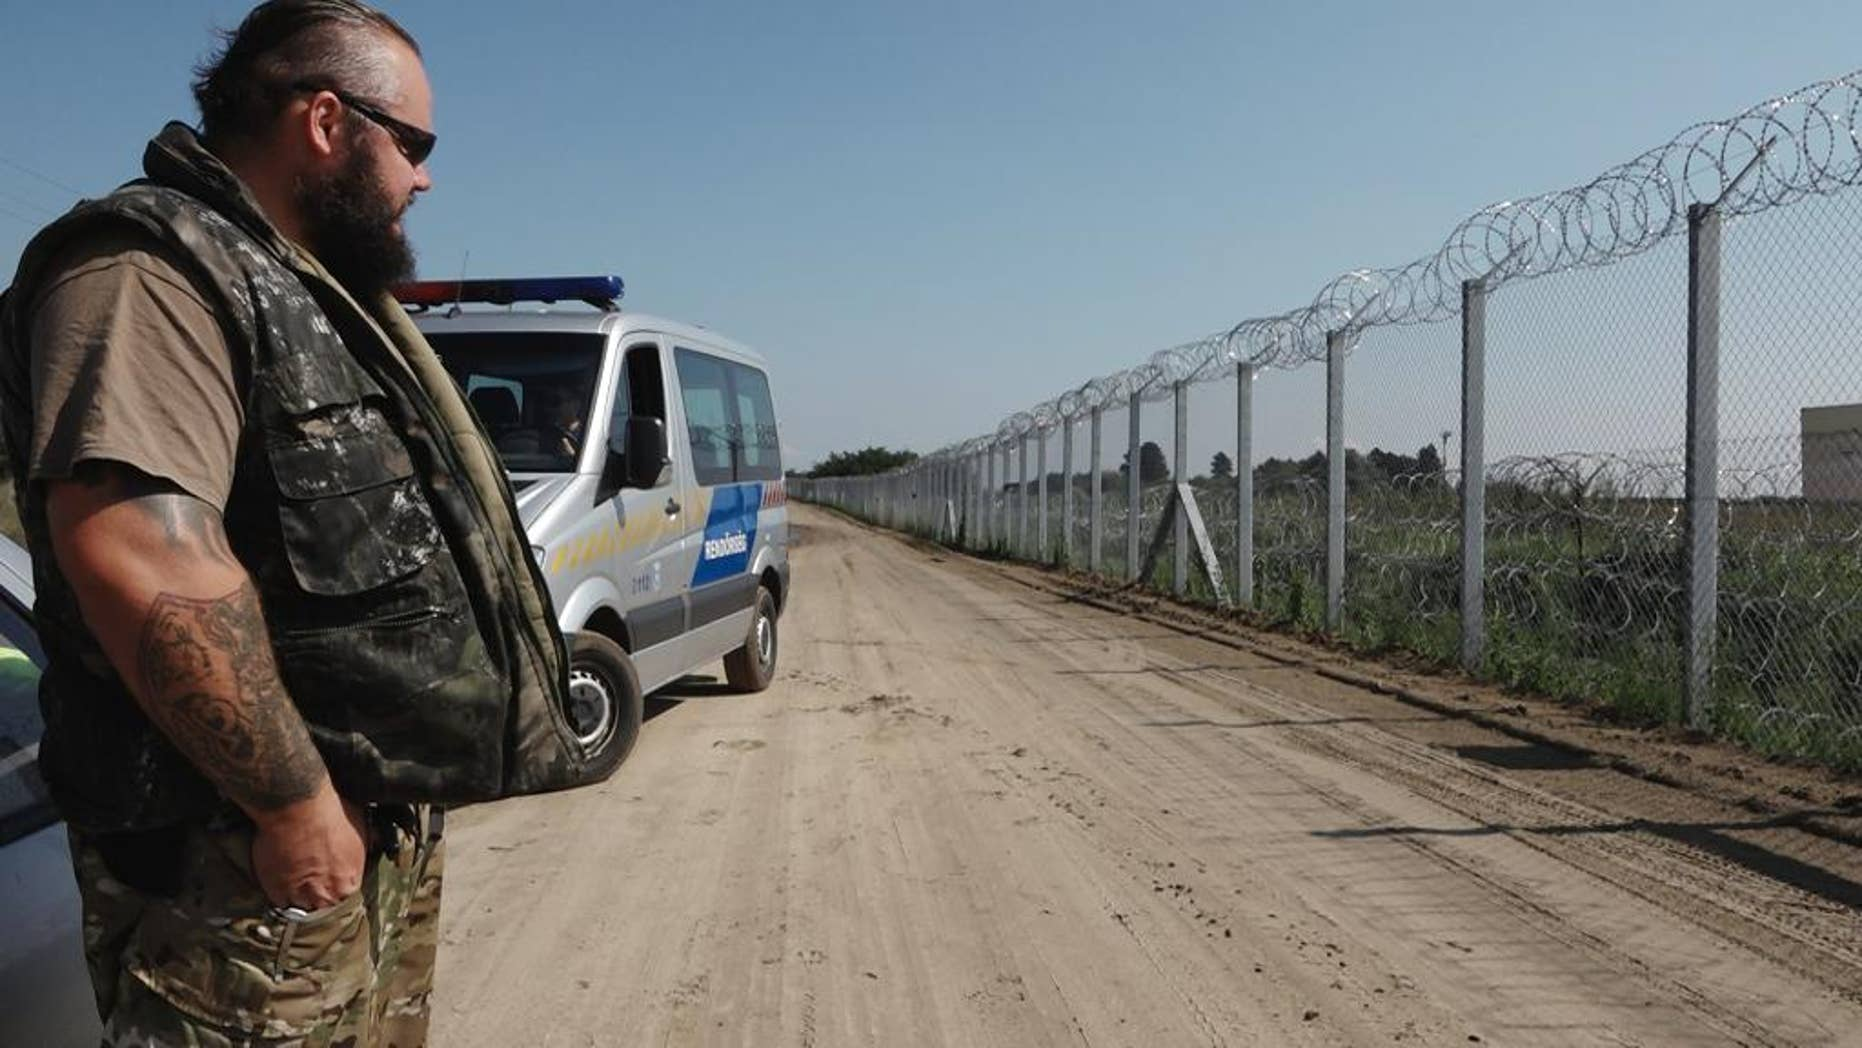 In this photo taken Wednesday, Sept. 14, 2016, ranger Zsolt Takacs guards the fence on Hungary's border with Serbia, built last year to stop the flow of migrants and refugees from entering the country. Hungary, concerned that a new surge of migrants trying to reach the European Union could soon take place, is planning to reinforce the barrier with a new fence and surveillance equipment. (AP Photo/Andras Nagy)